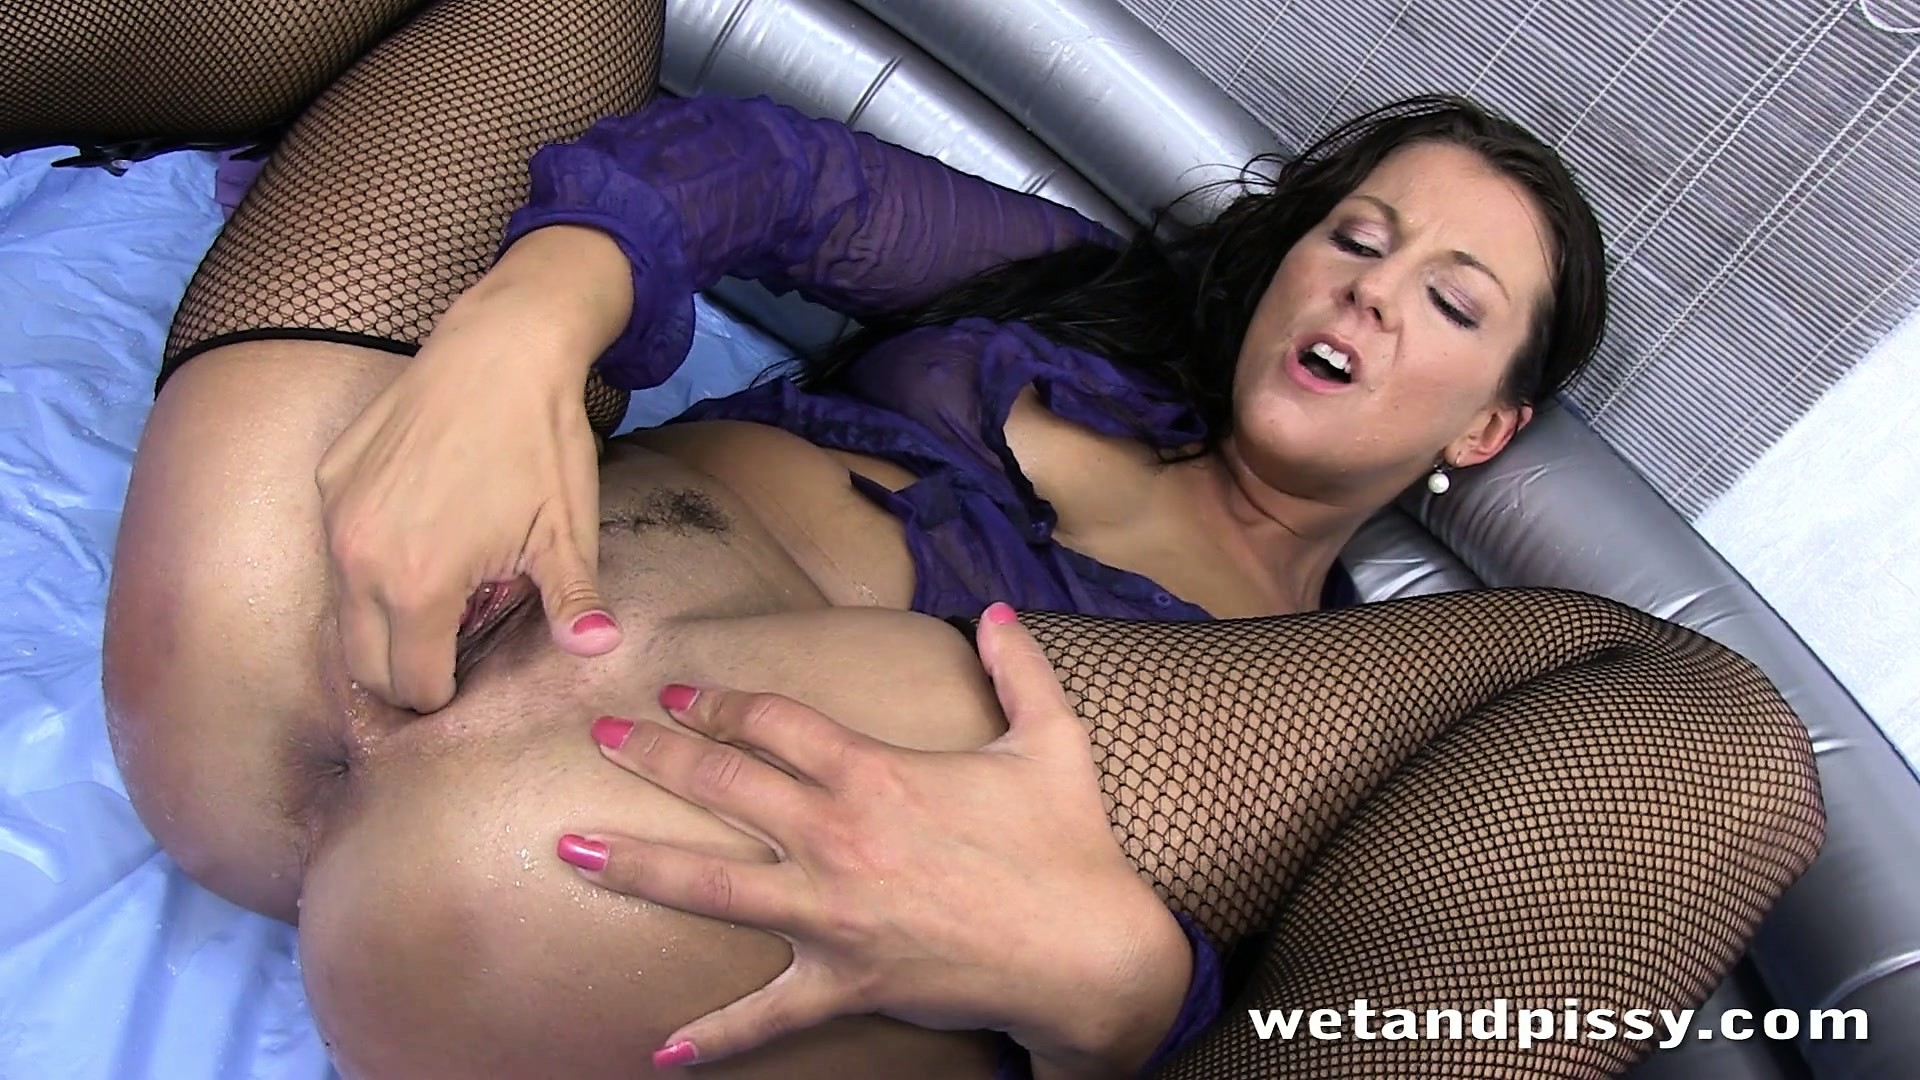 Porno Video of Nasty Brunette In Short Purple Skirt And Stockings Shoves Fingers In Her Clutch